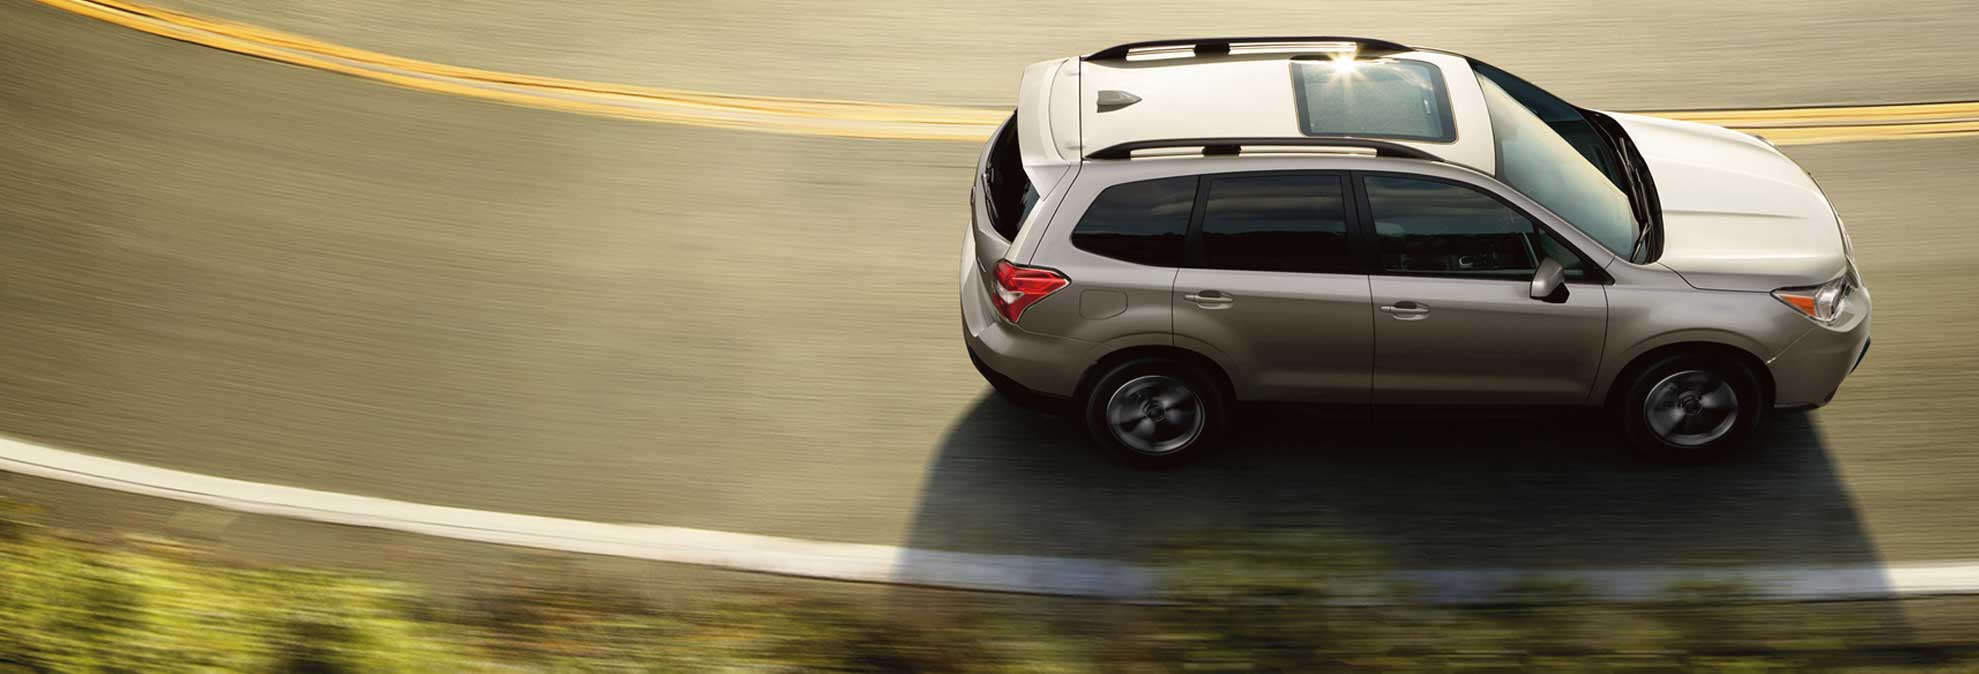 Worksheet. Best SUV Buying Guide  Consumer Reports